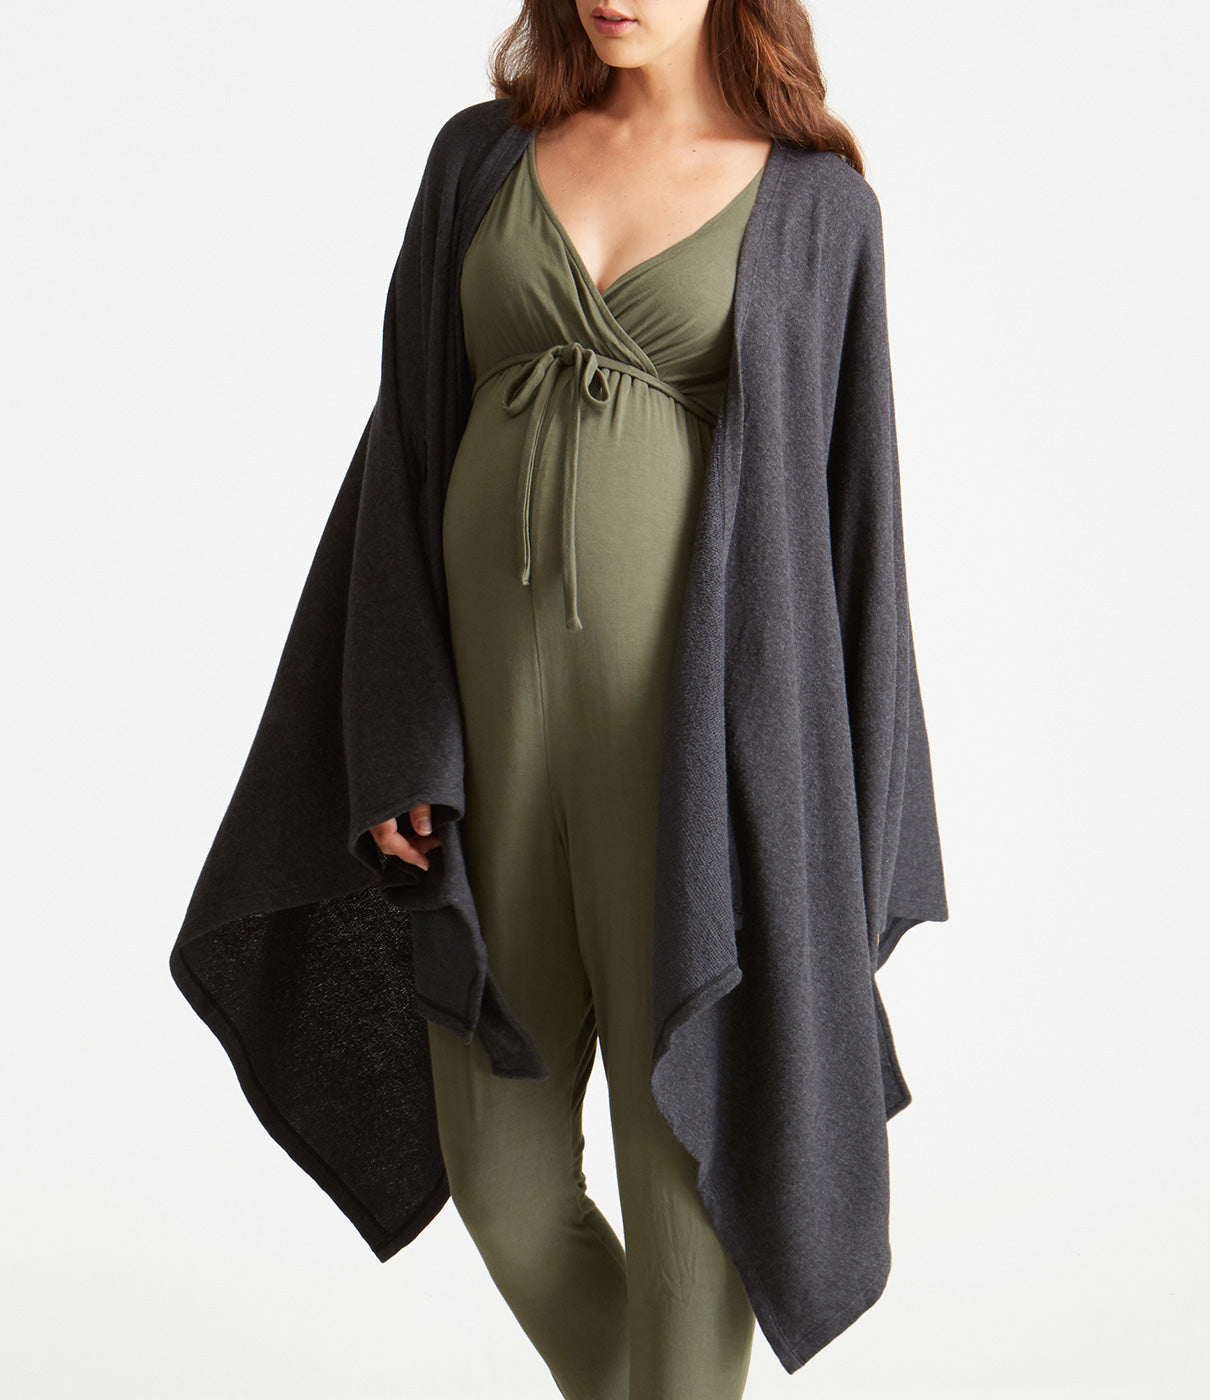 Grows With YouFits throughout and after pregnancy.